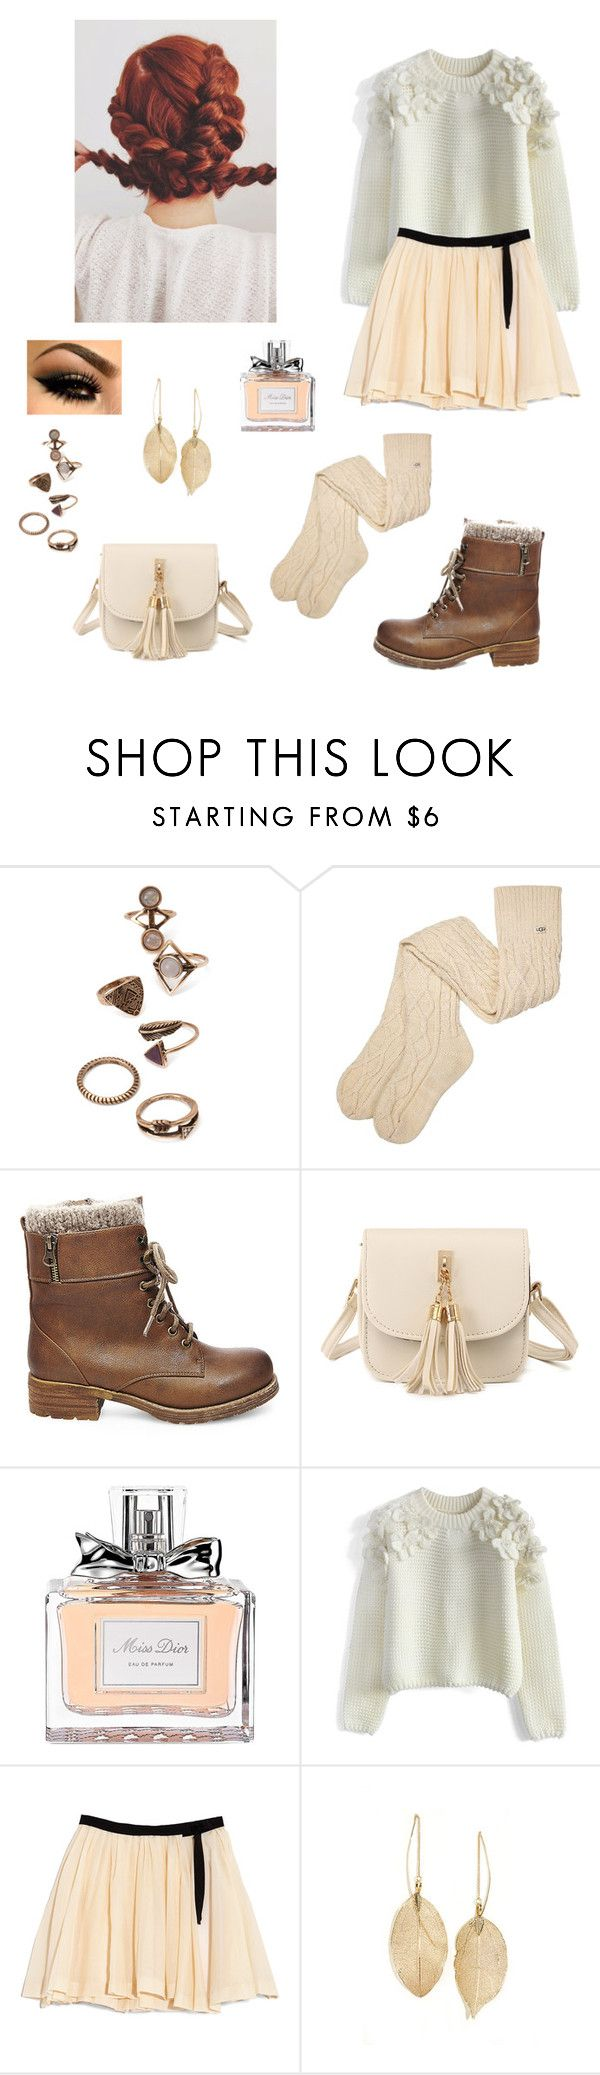 """""""Meeting the Durmstrangs ..."""" by stormfighter ❤ liked on Polyvore featuring Forever 21, UGG, Steve Madden, Christian Dior, Chicwish, Band of Outsiders and LULUS"""